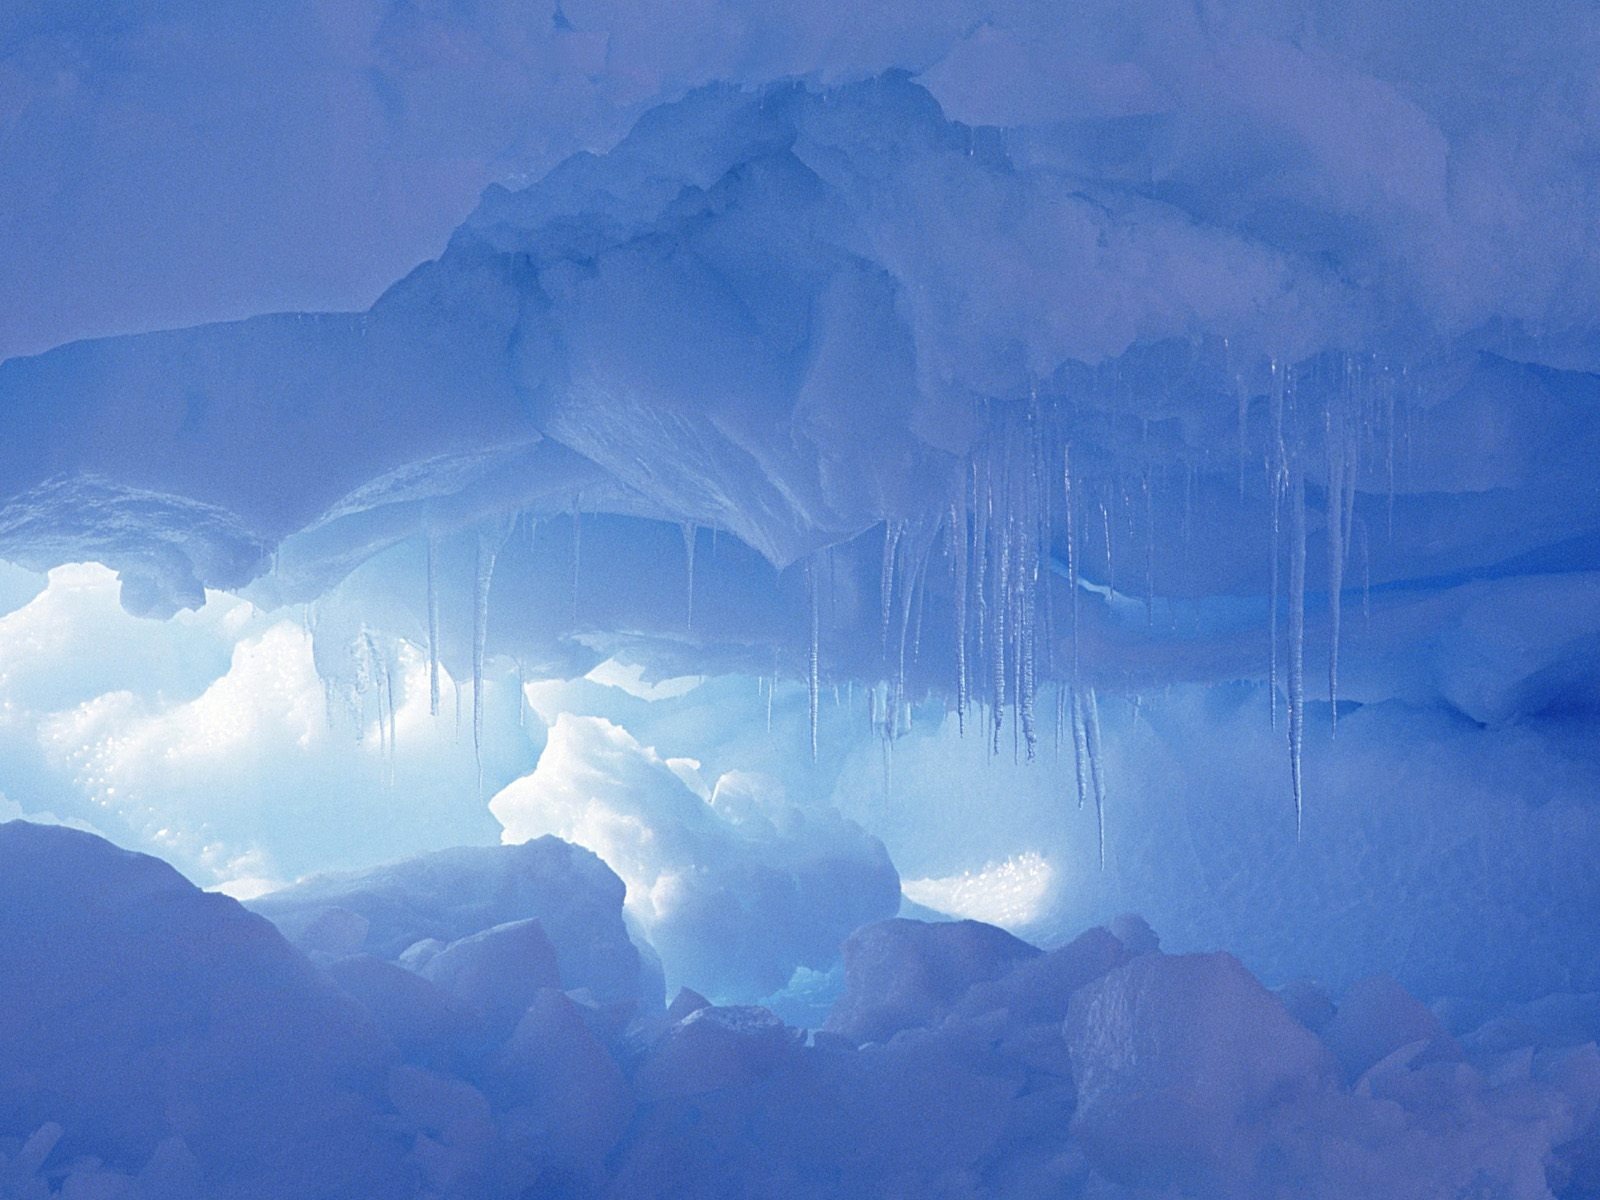 icicles wallpaper - photo #27